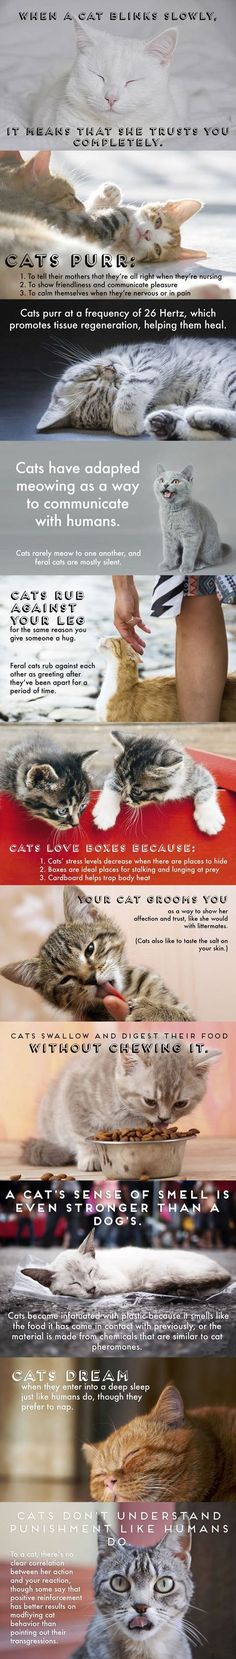 What is your cat trying to say? This breaks down common kitty behaviors to let you understand.